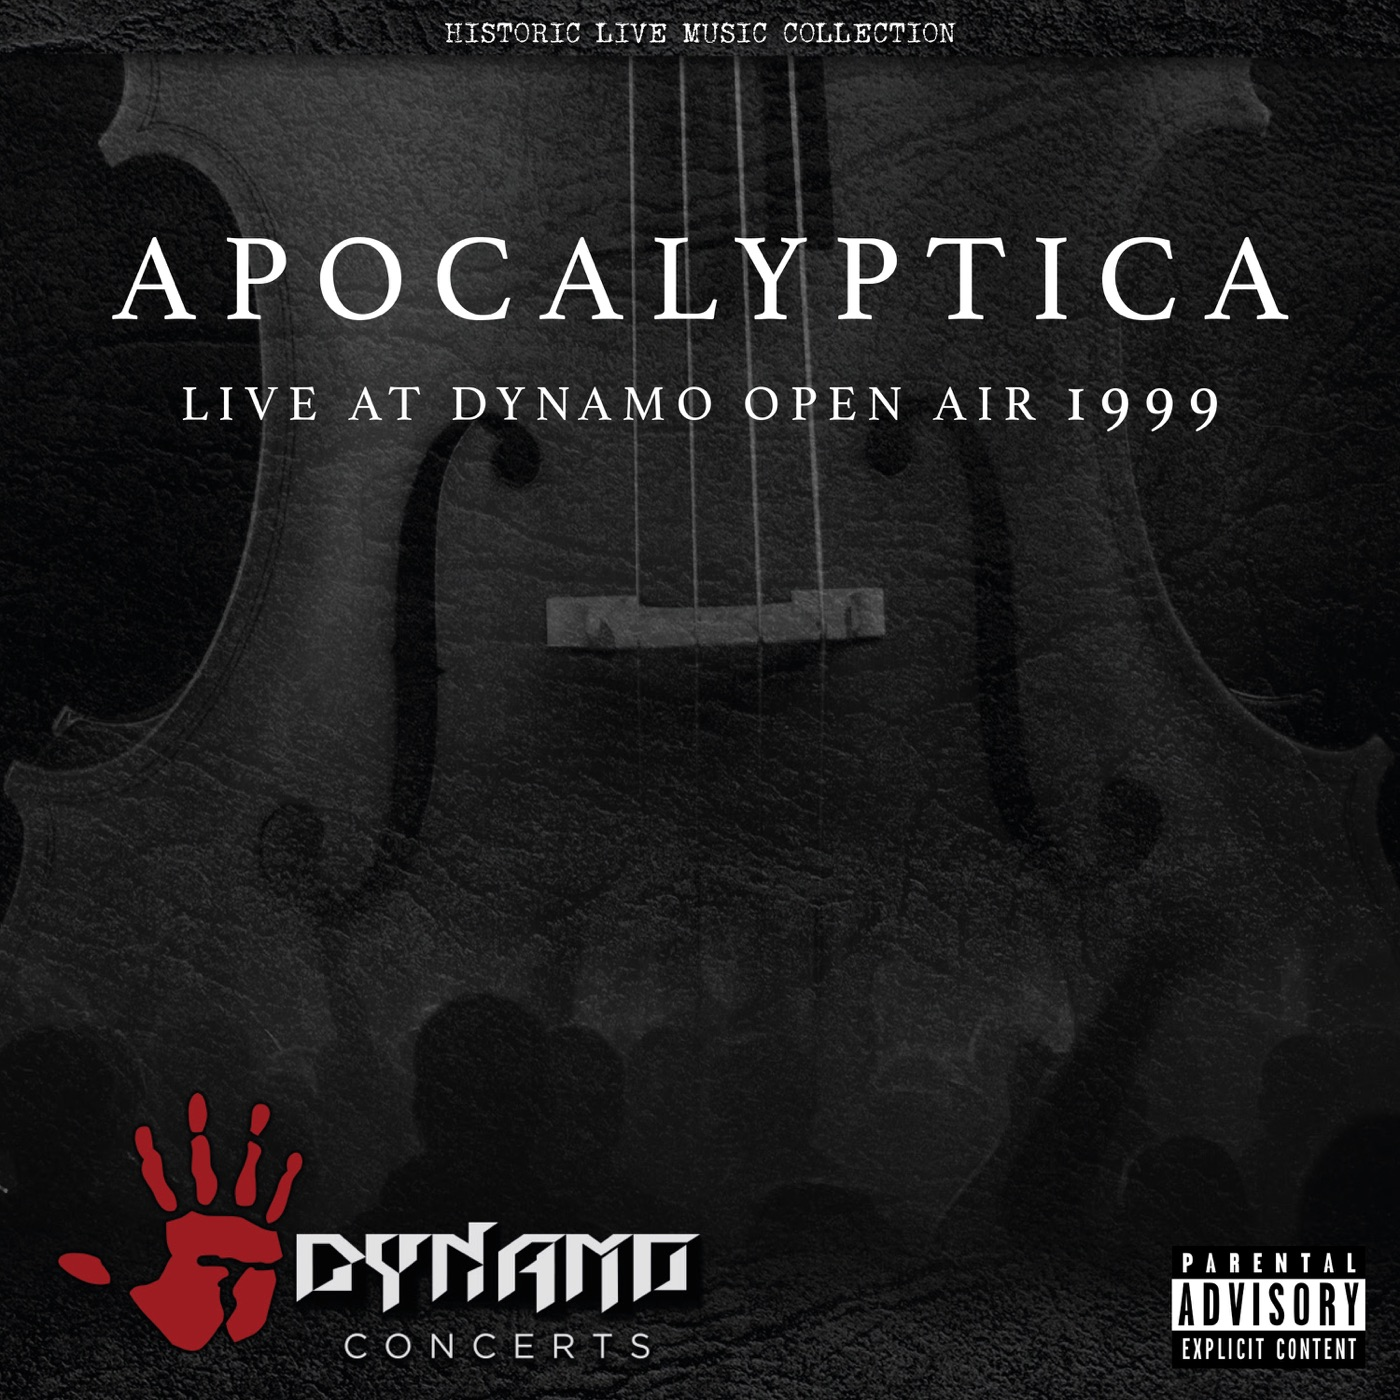 Apocalyptica - Live At Dynamo Open Air 1999 (2019)